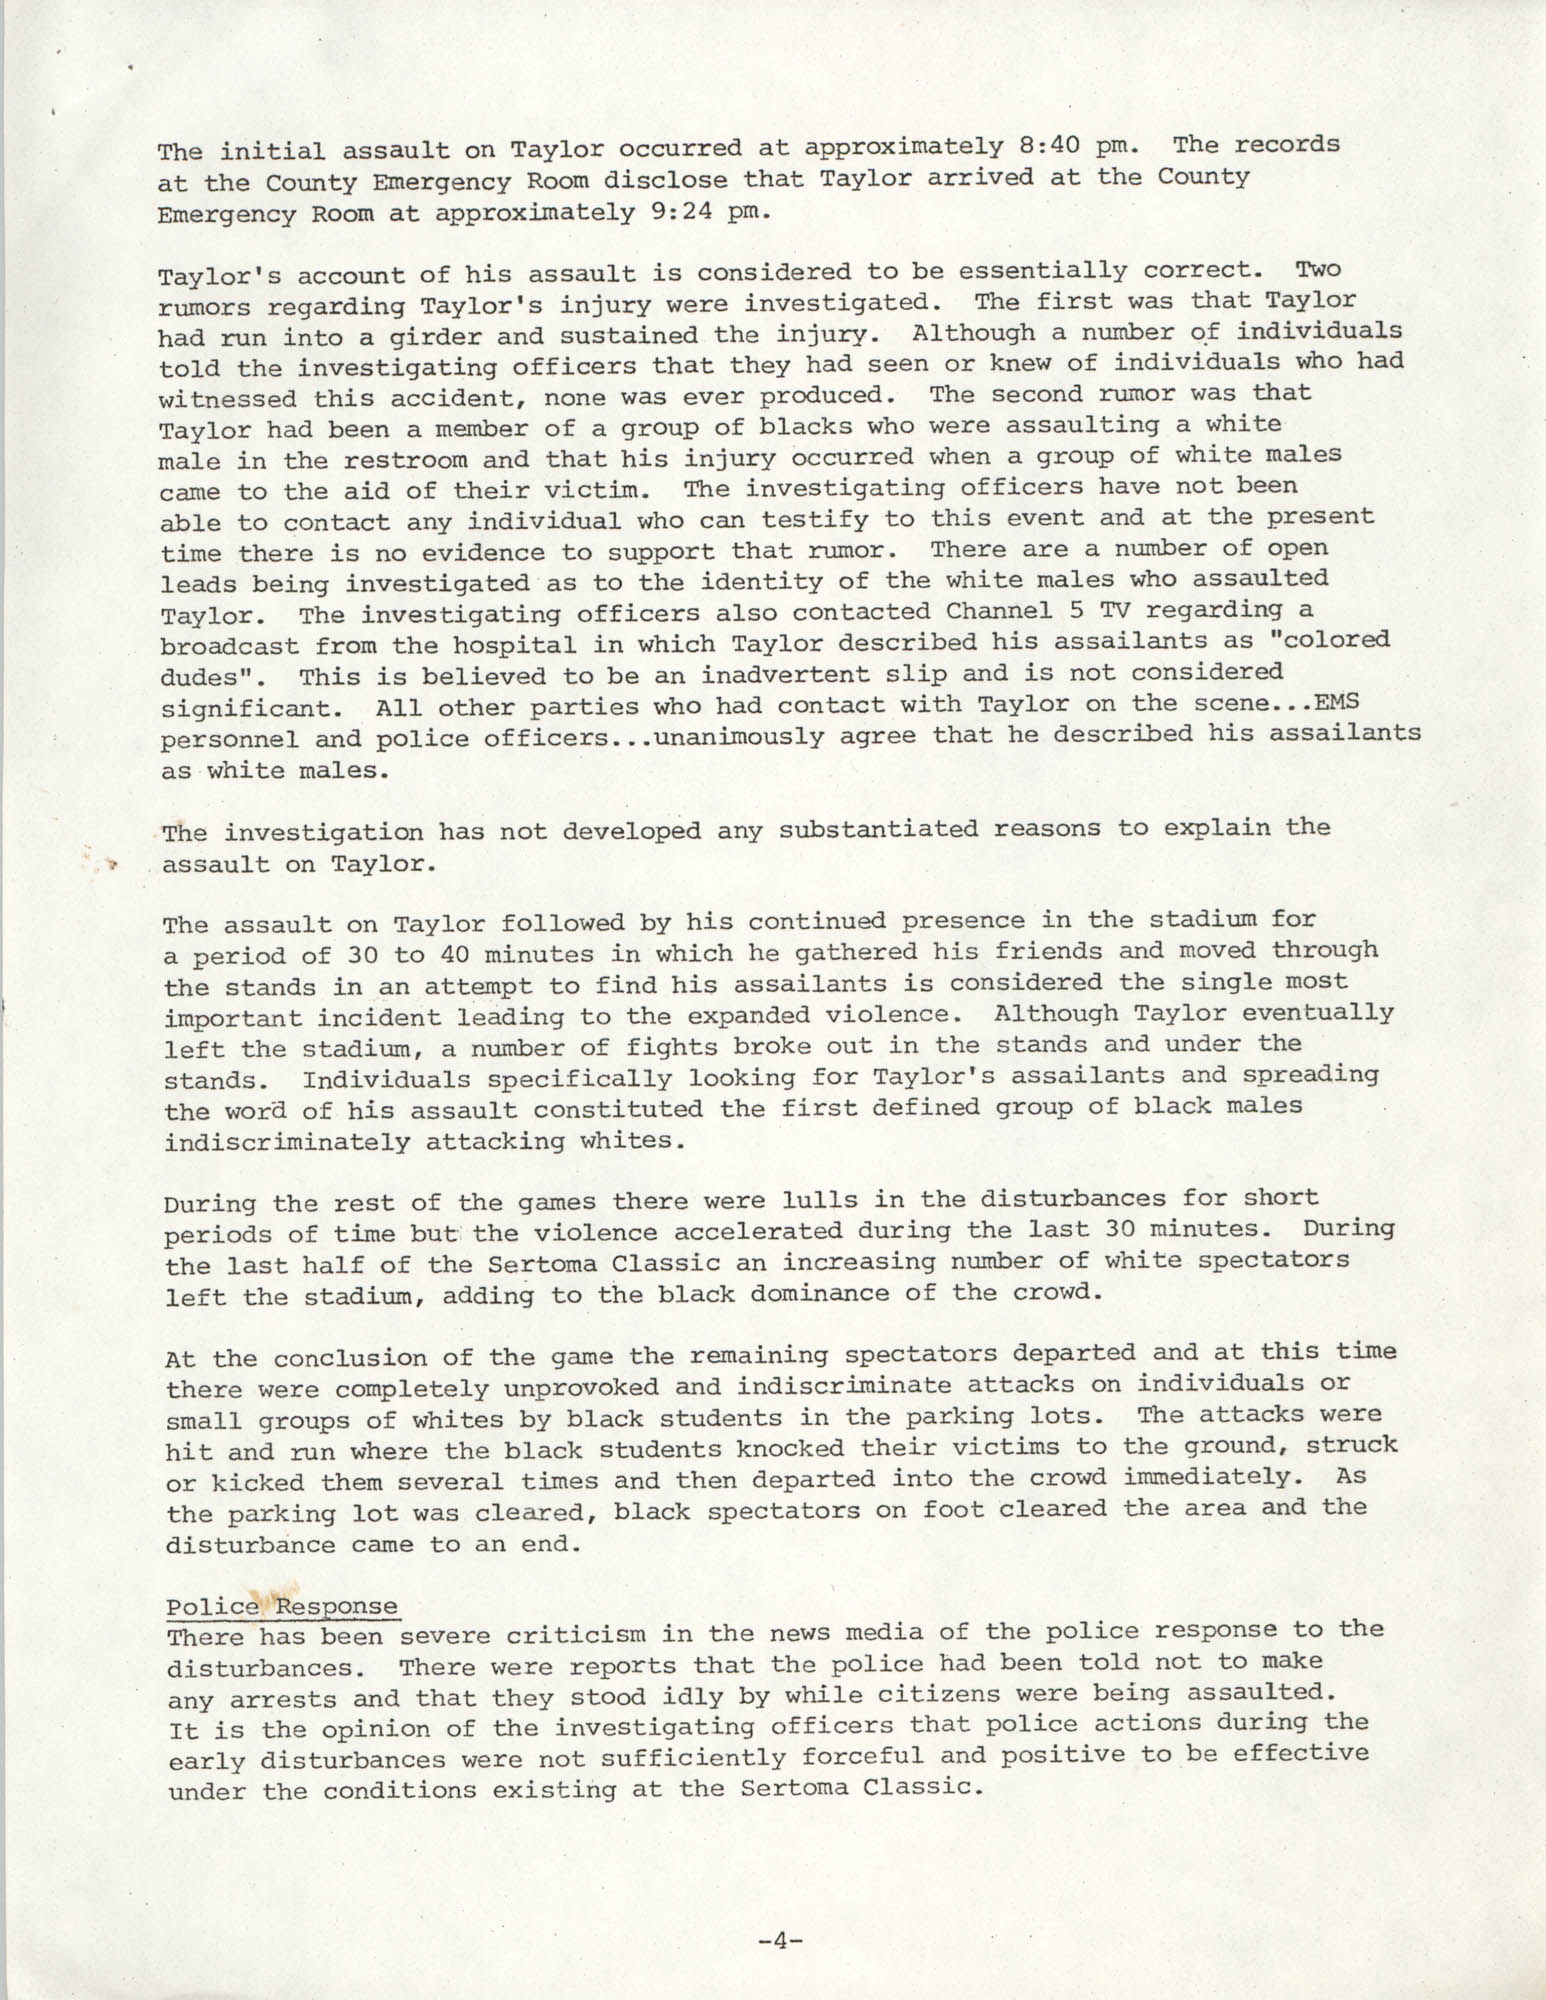 City of Charleston South Carolina Police Department Memorandum, September 6, 1977, Page 4